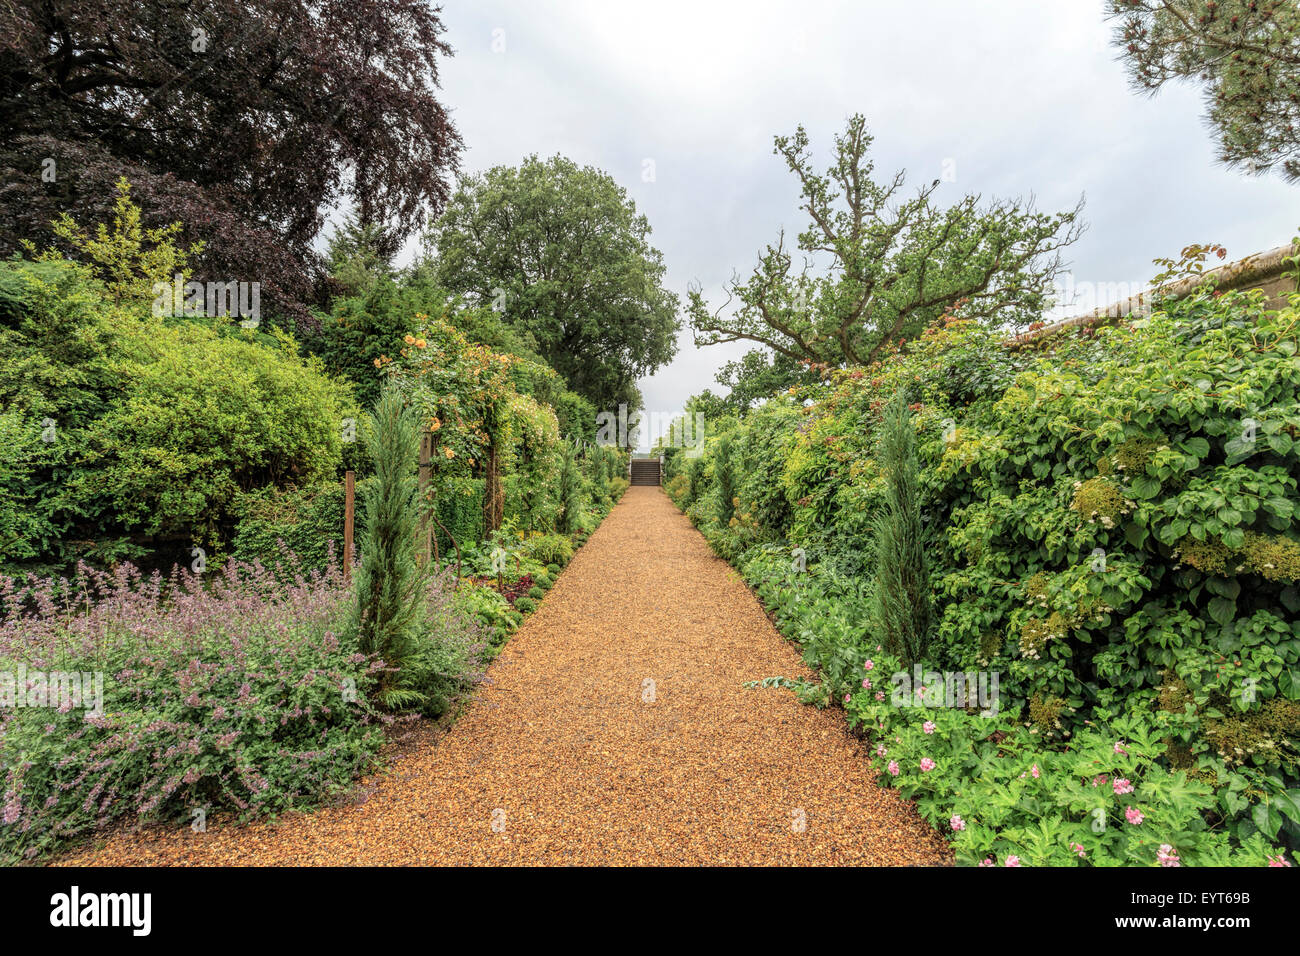 The Walled Garden at Ickworth House, Horringer, near Bury St. Edmunds, Suffolk, East Anglia, England, Great Britain, - Stock Image